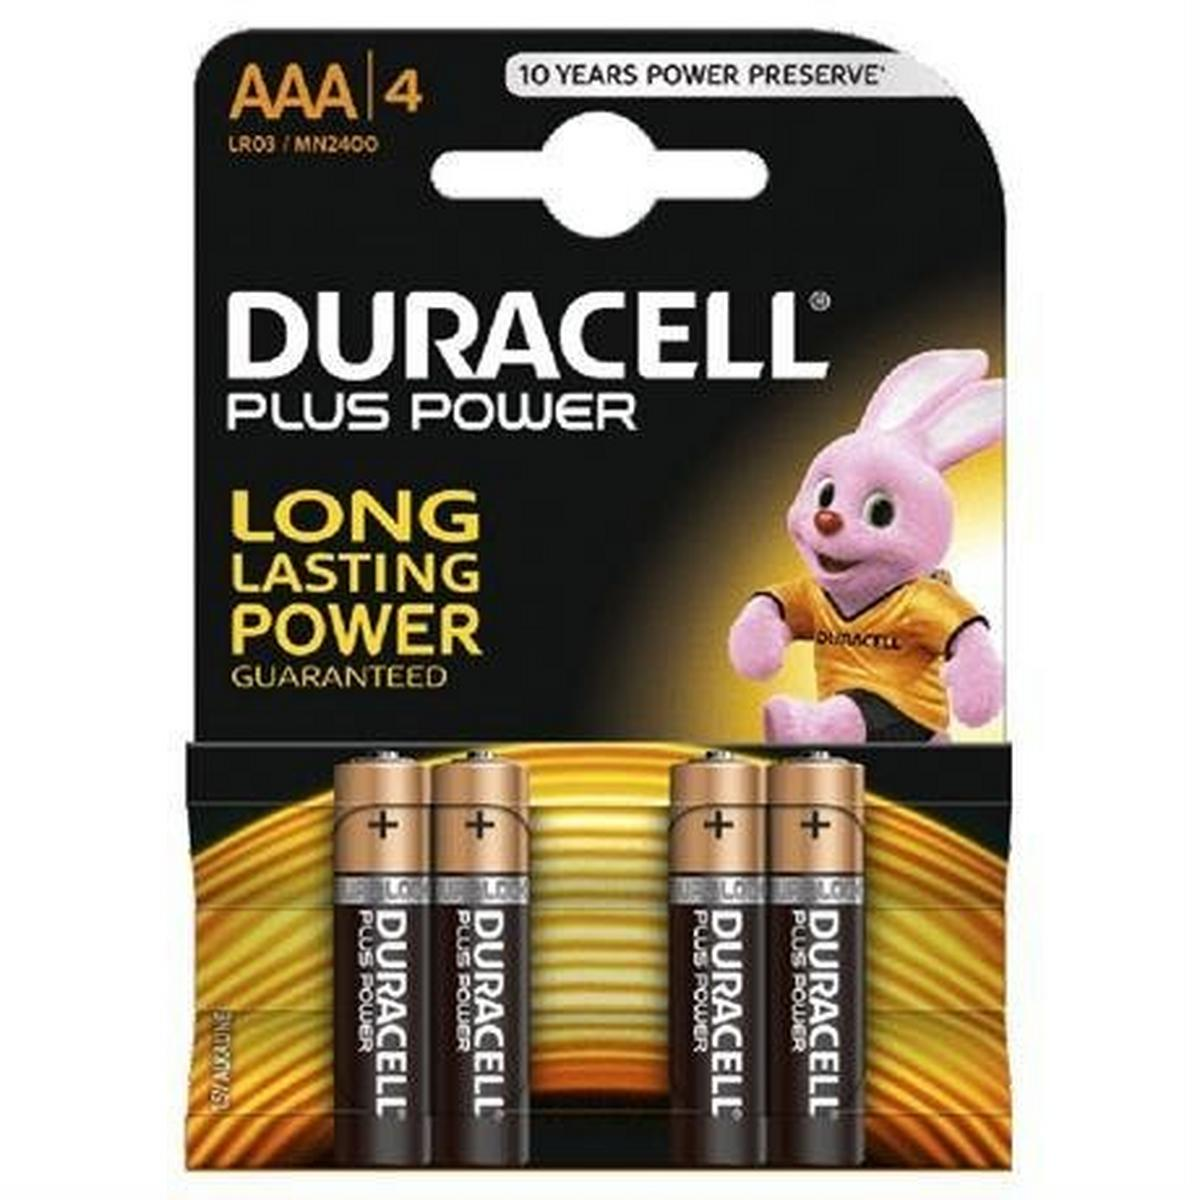 Duracell Batteries: Duracell MN2400K4P AAA Cell 4 Pack